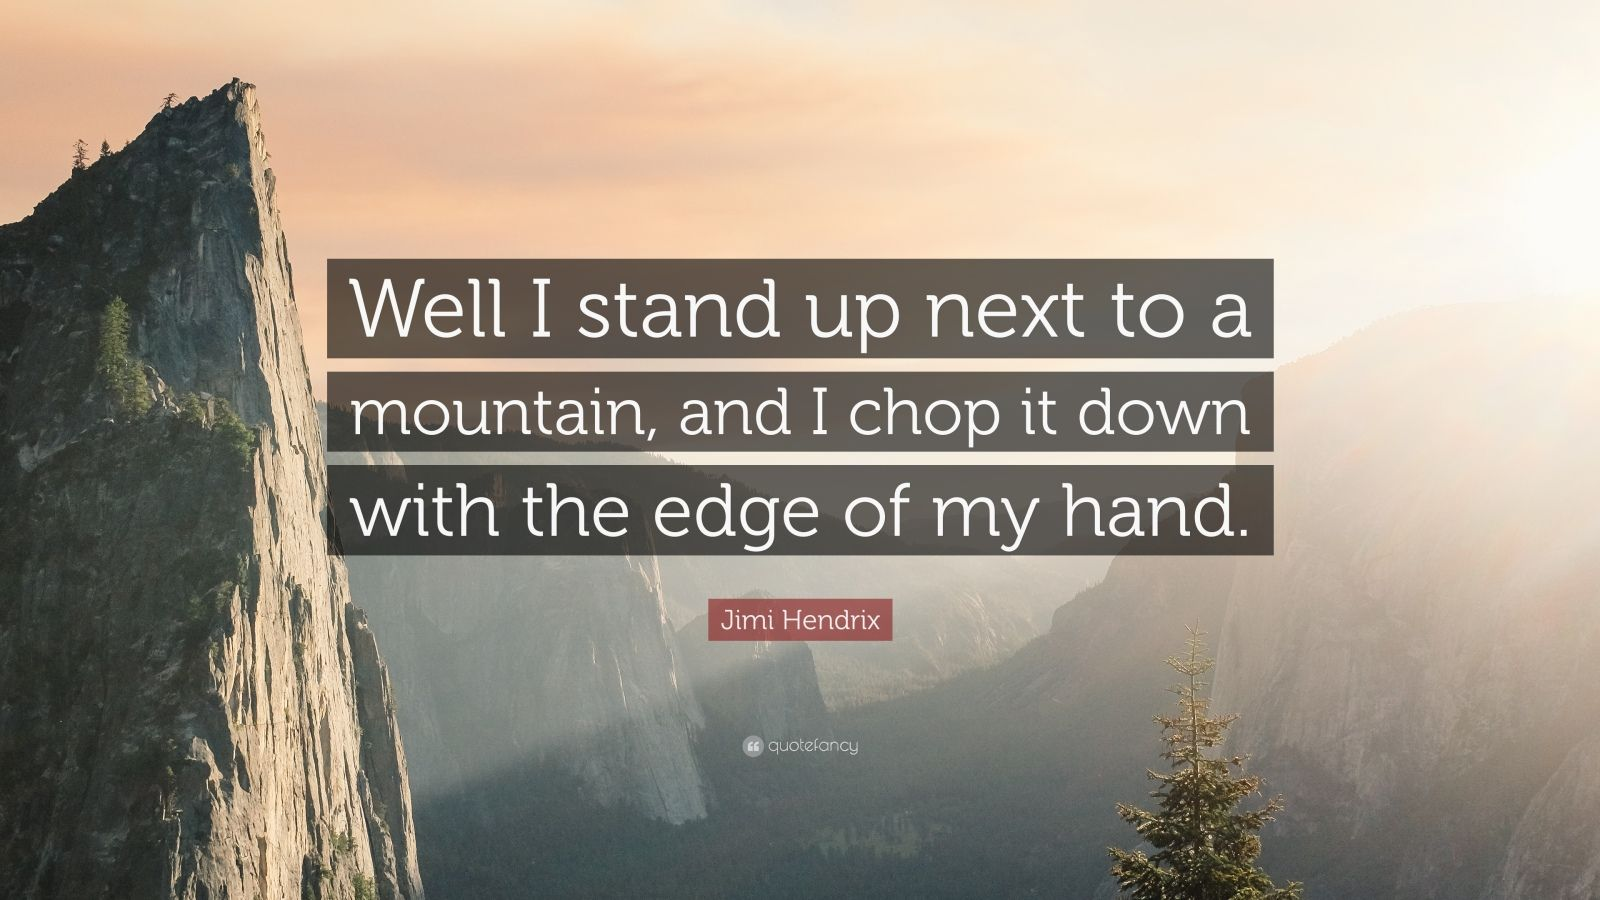 """Jimi Hendrix Quote: """"Well I stand up next to a mountain, and I chop it down with the edge of my hand."""""""